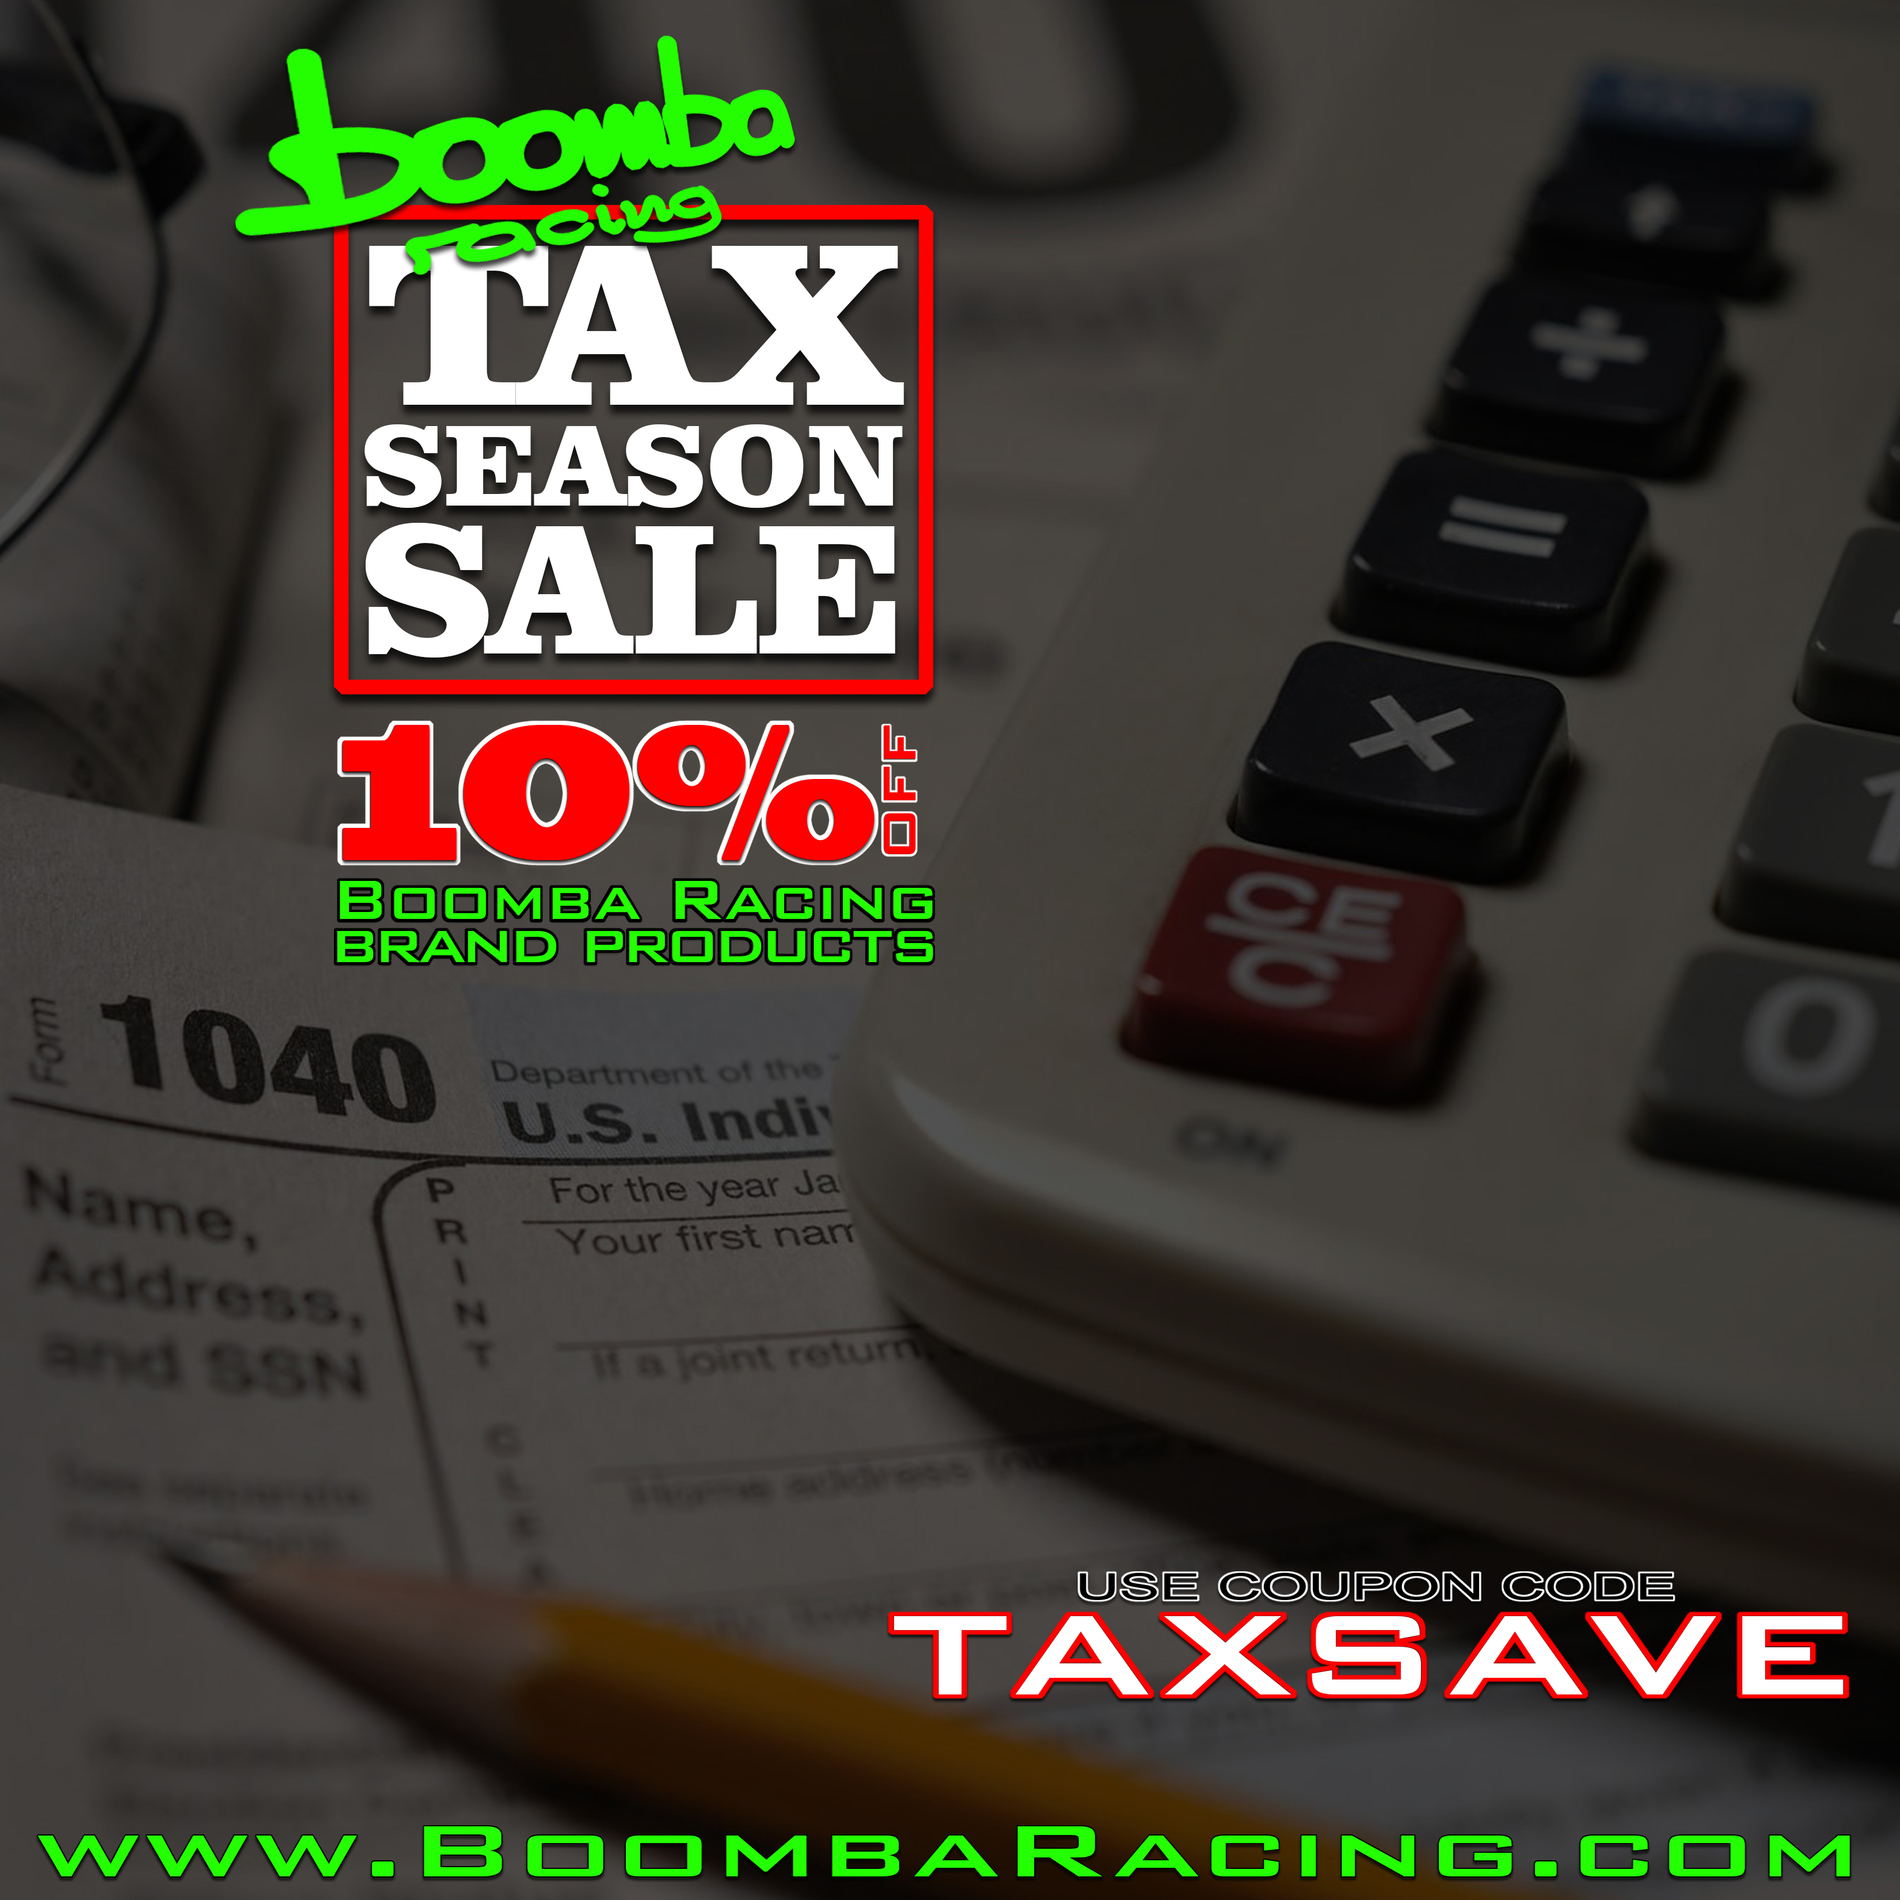 2020-tax-season-sale-copy.jpg